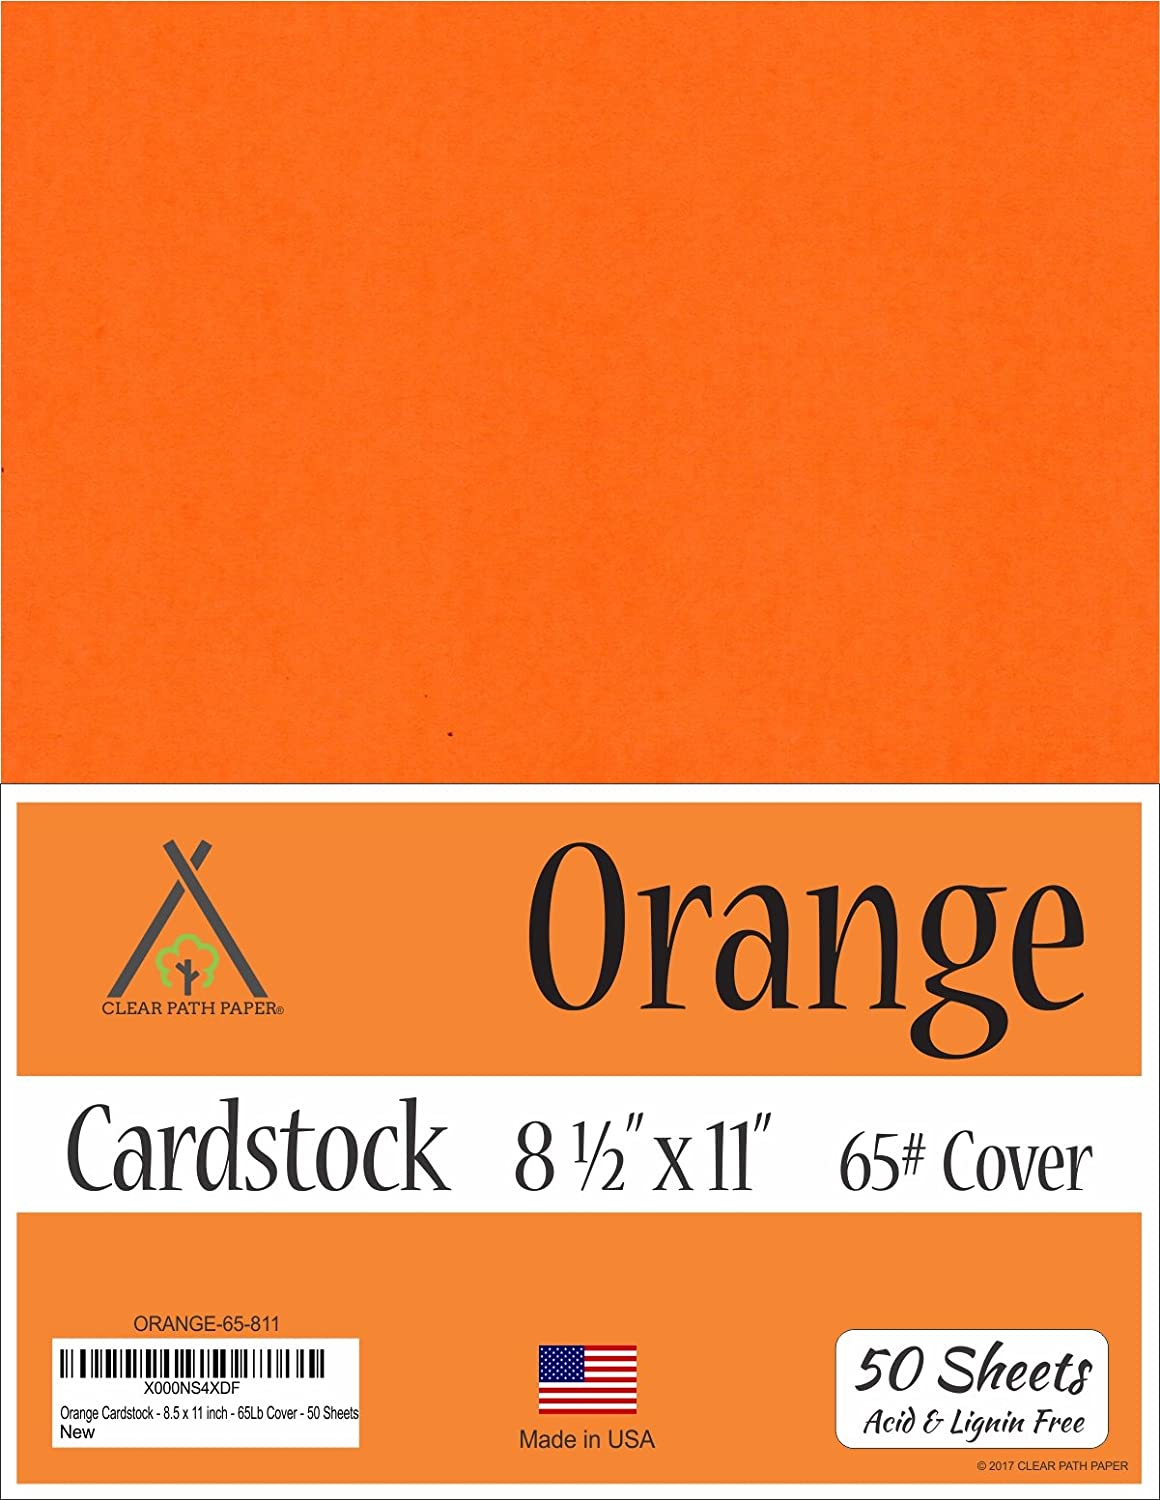 Orange Cardstock - 8.5 x 11 inch - 65Lb Cover - 50 Sheets Clear Path Paper SP-ORANGE-8.511-50PK